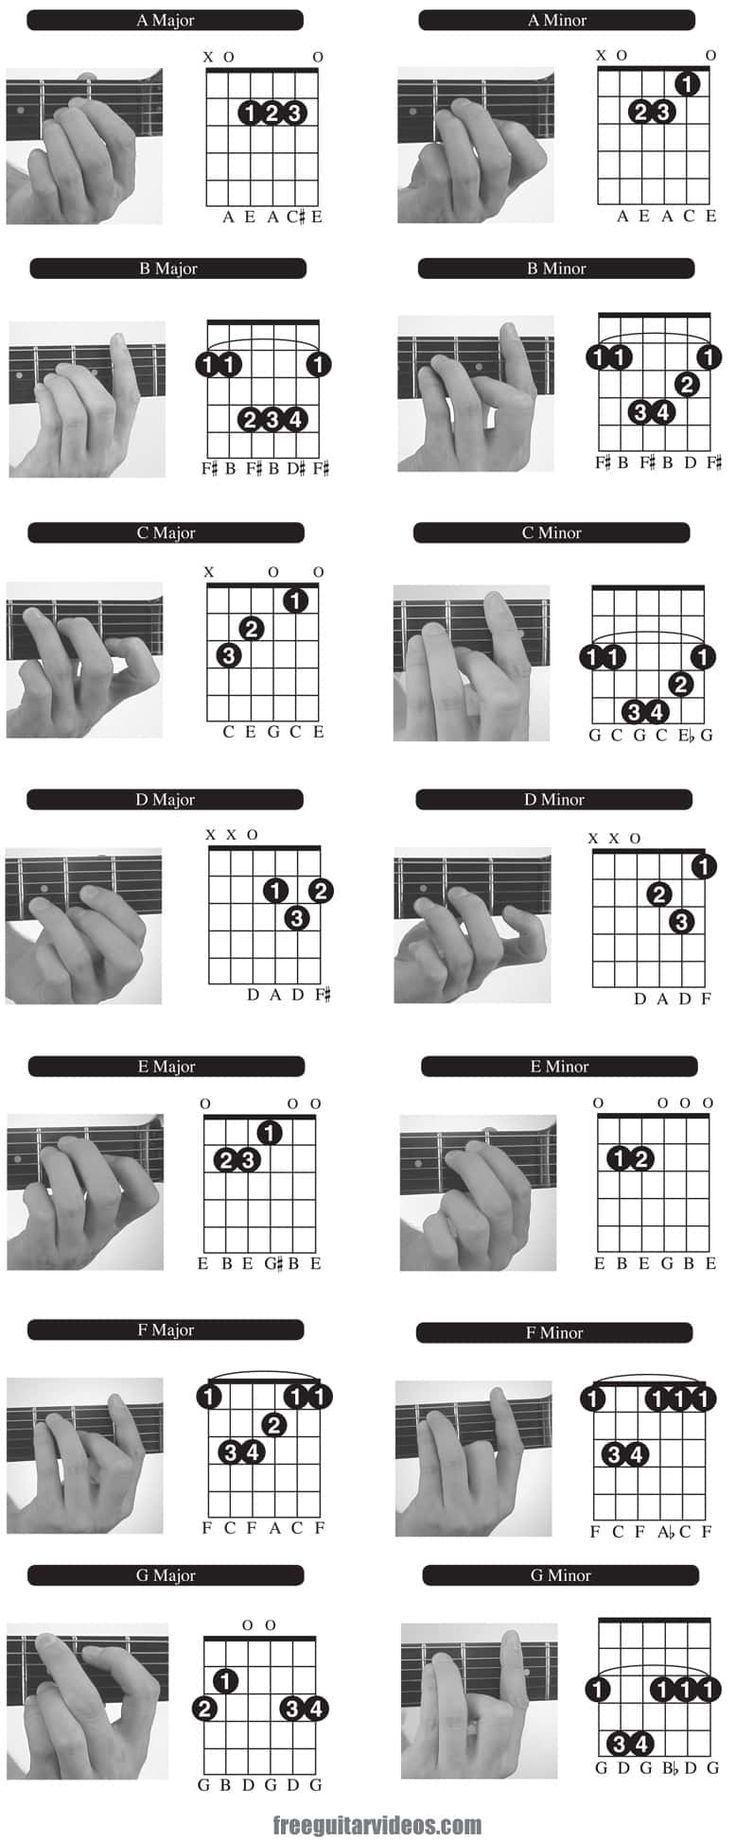 Guitar chord diagrams. Great visuals!